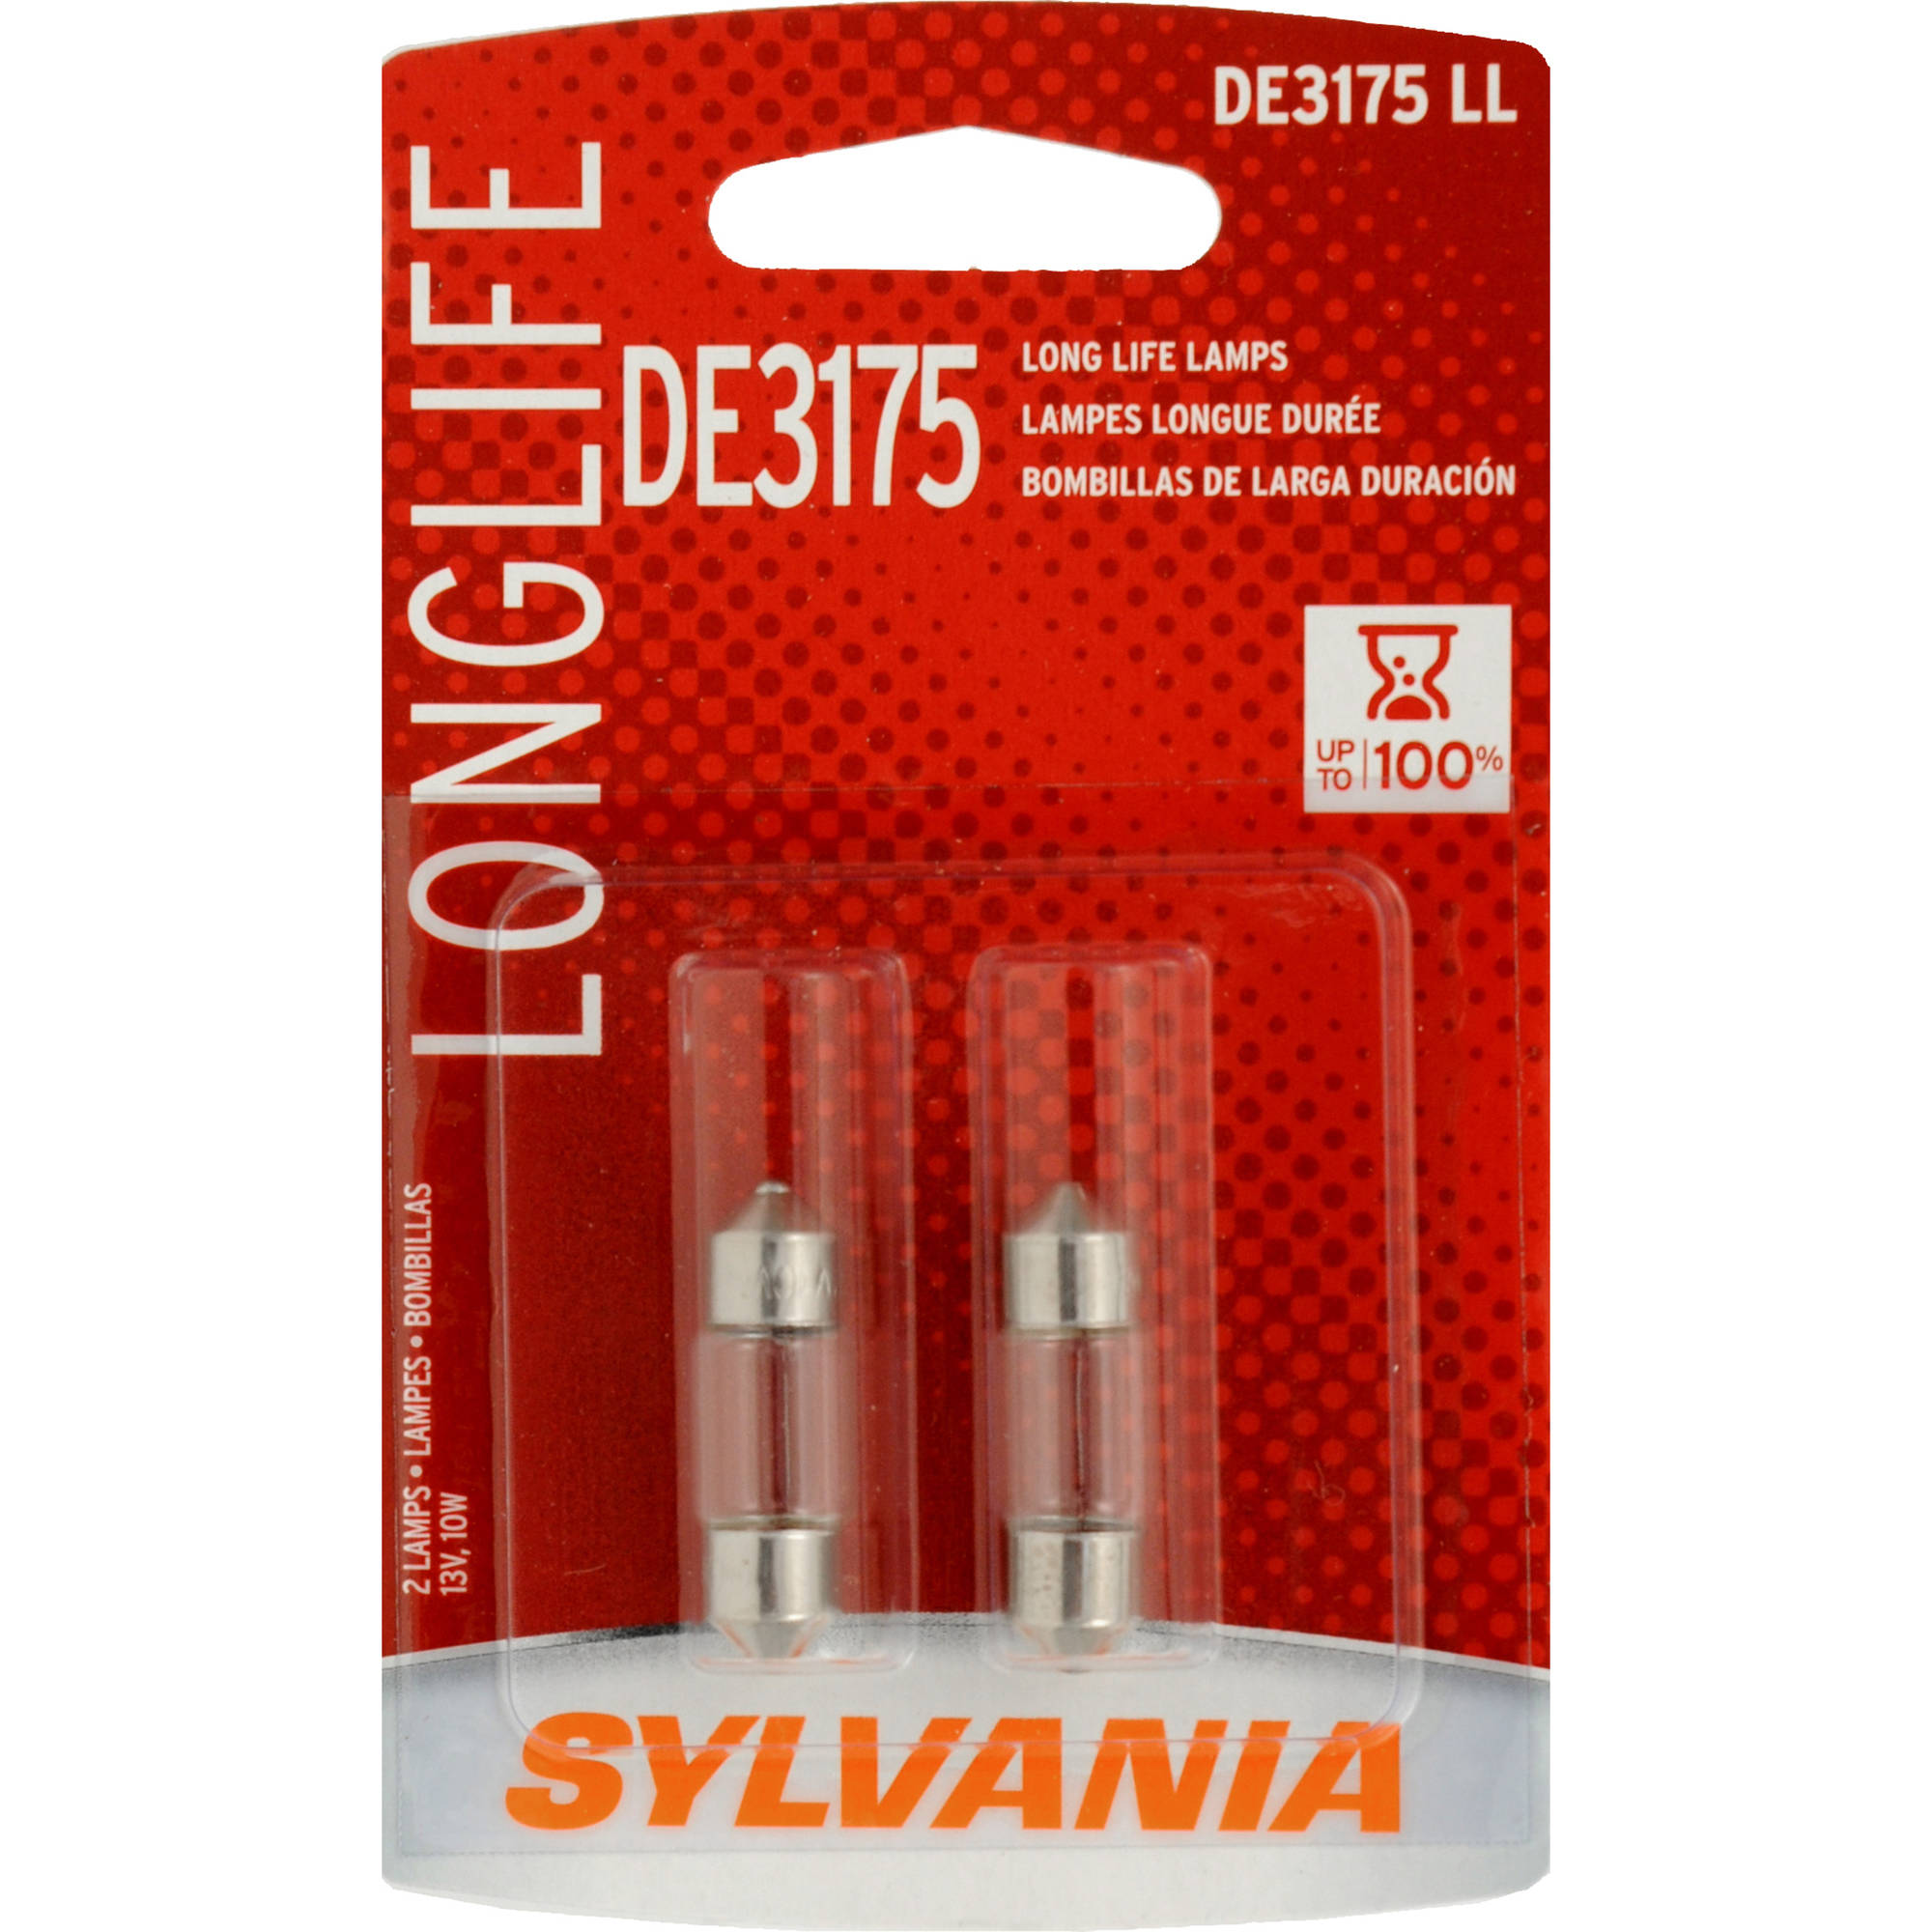 Sylvania DE3175 Long-Life Miniature Bulb, Twin Pack